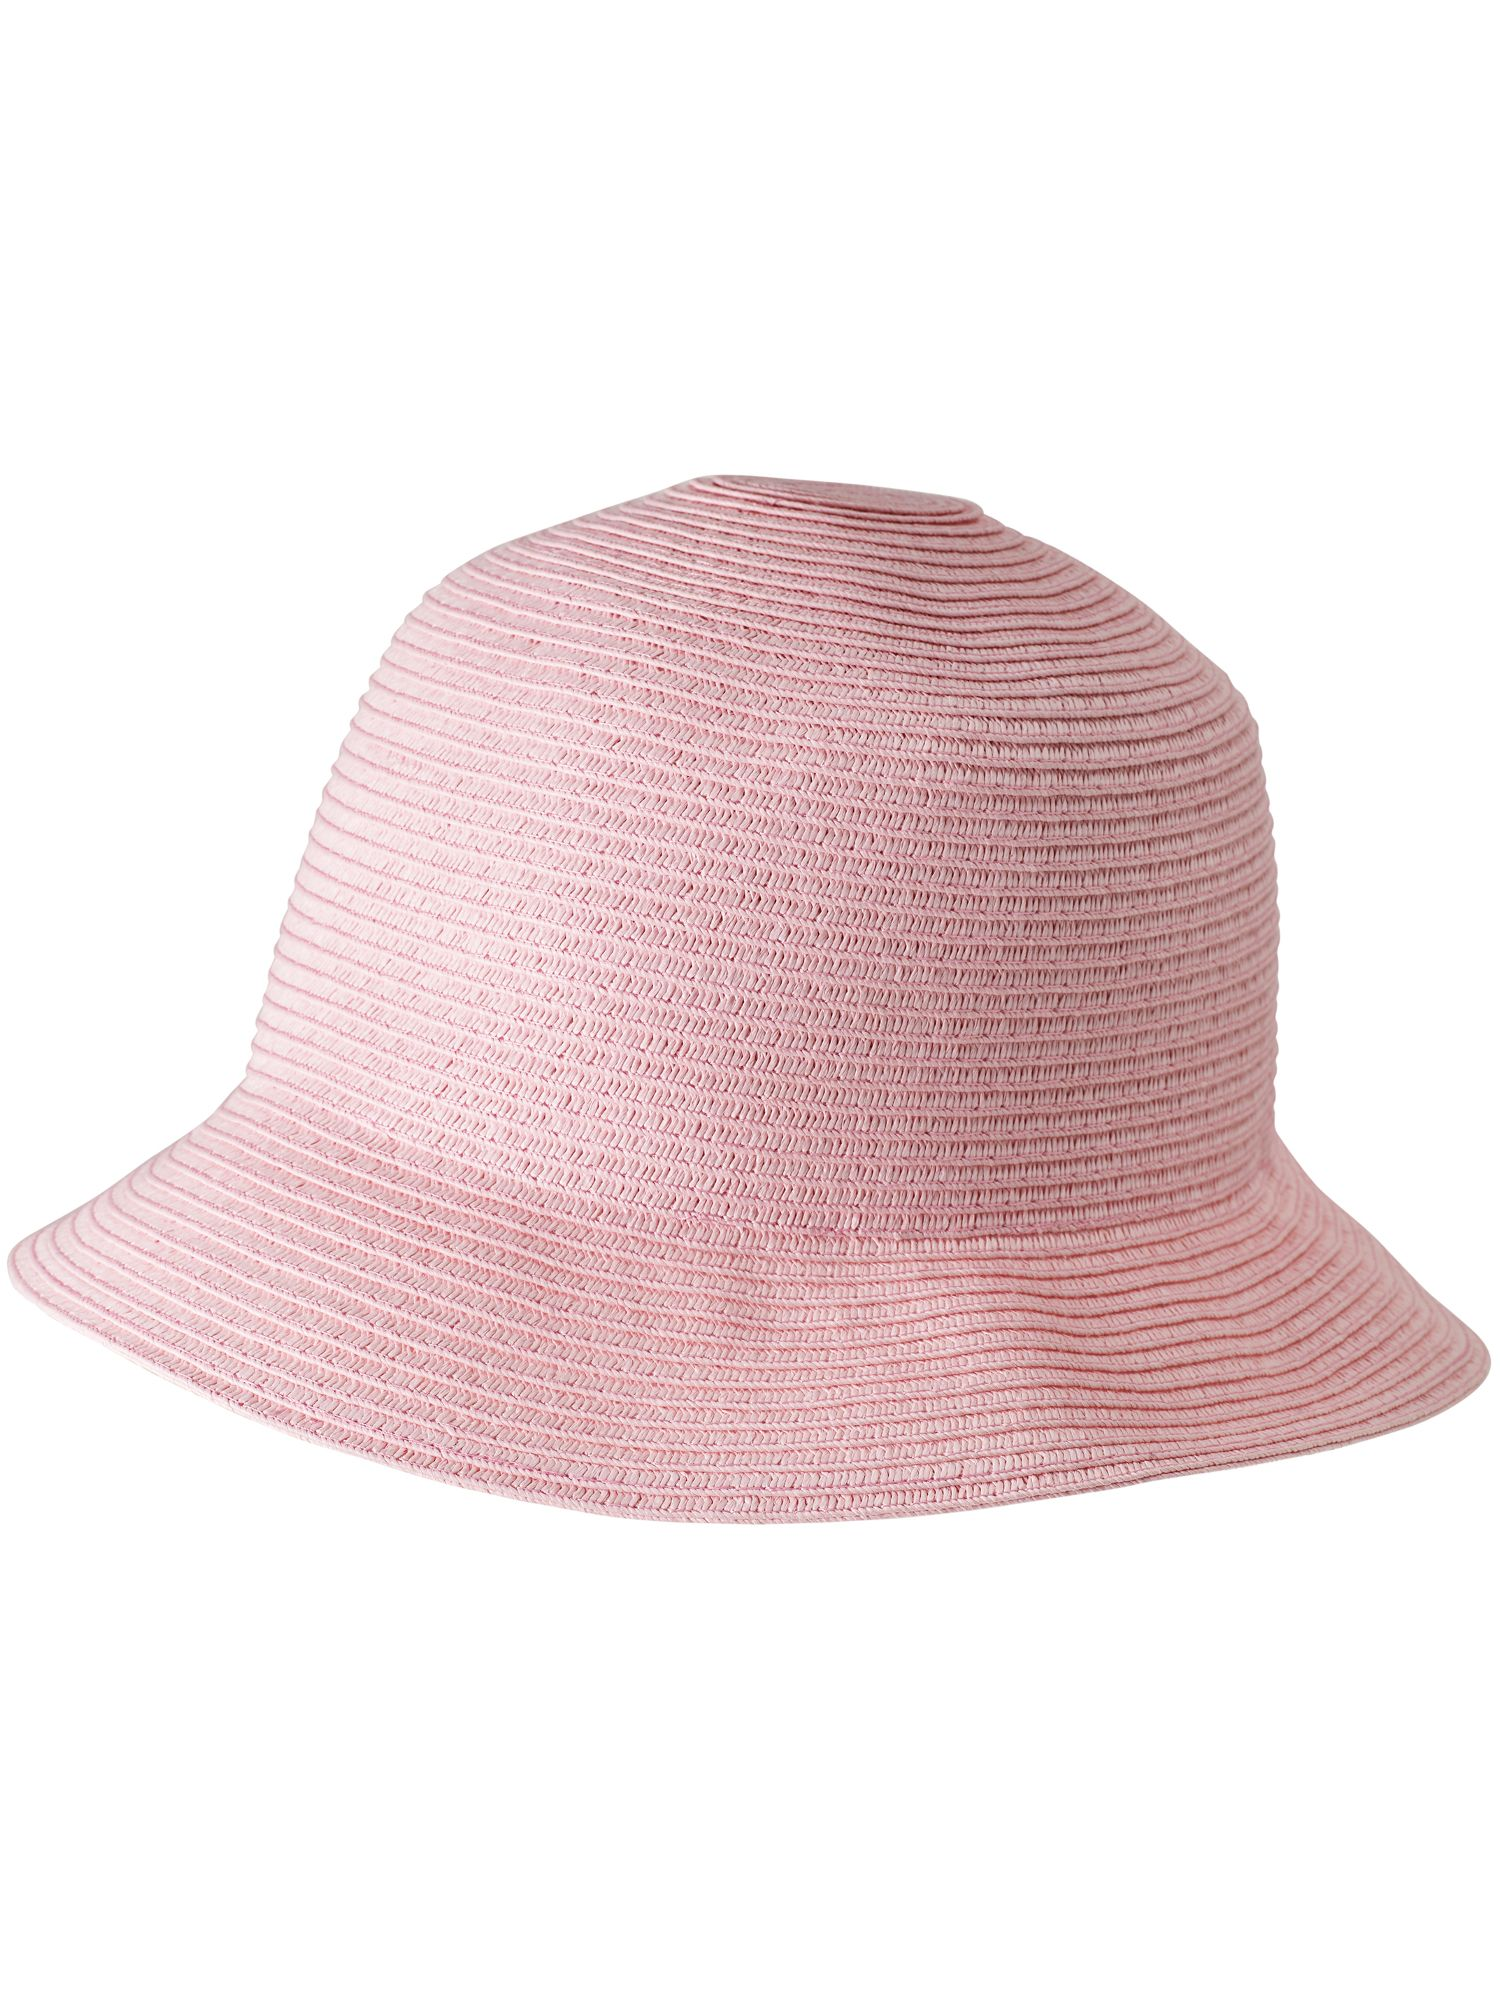 Daily Sports Loren Hat, Pink